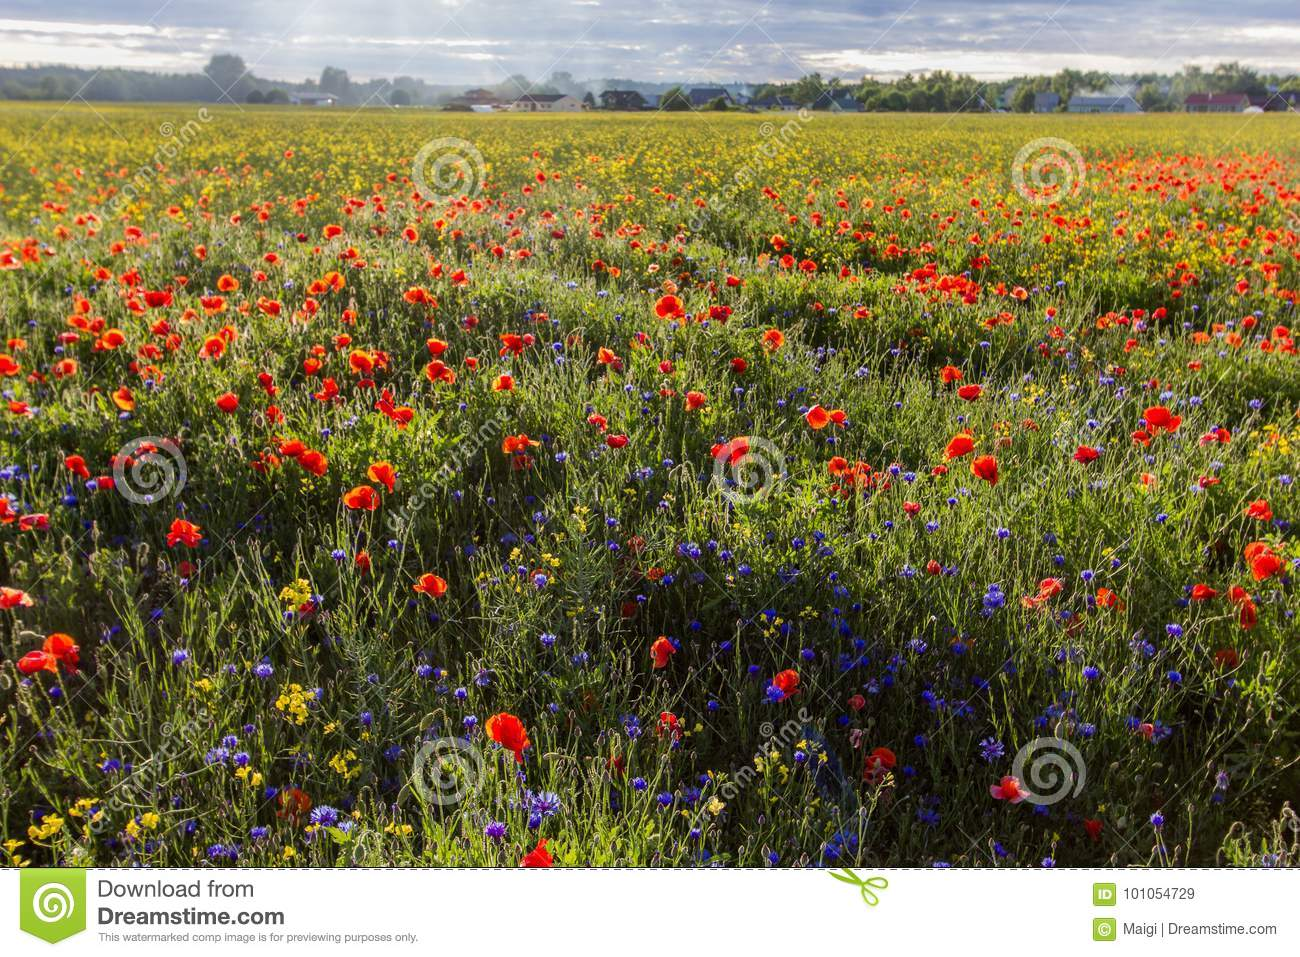 Download Countryside And Blooming Poppy Field Stock Image - Image of blooming, clouds: 101054729